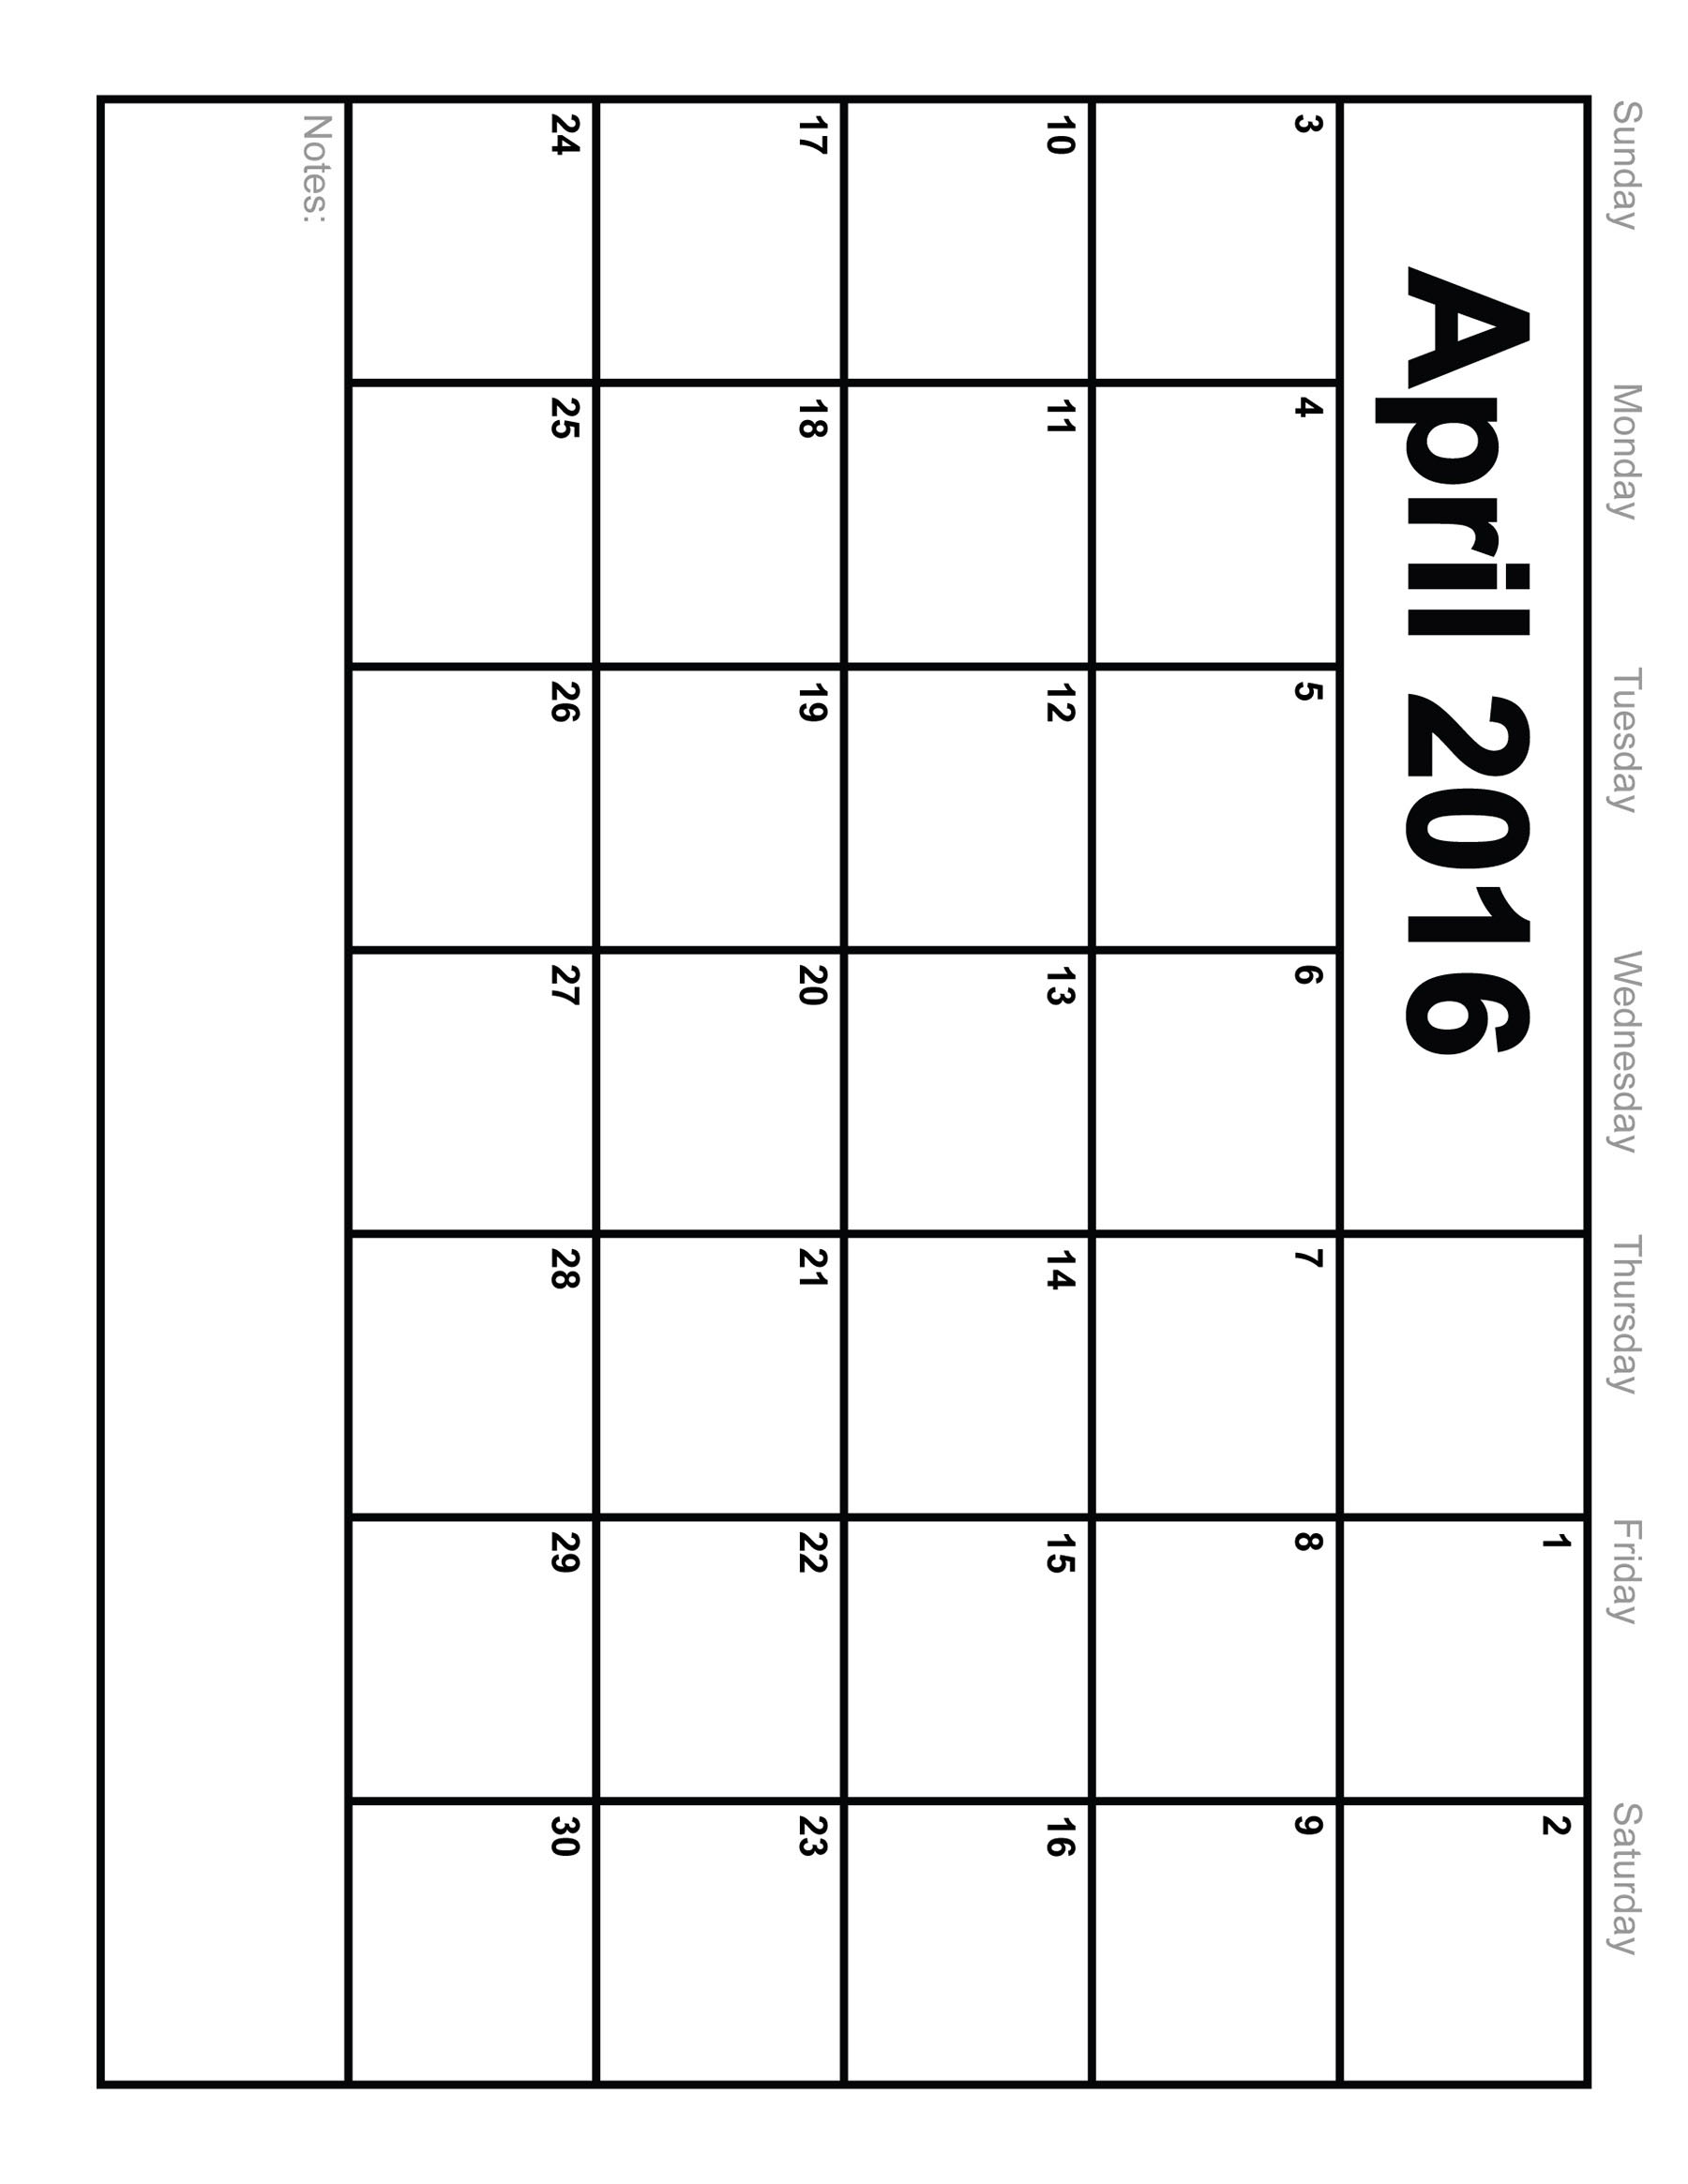 June 2016 Calendar Printable Org